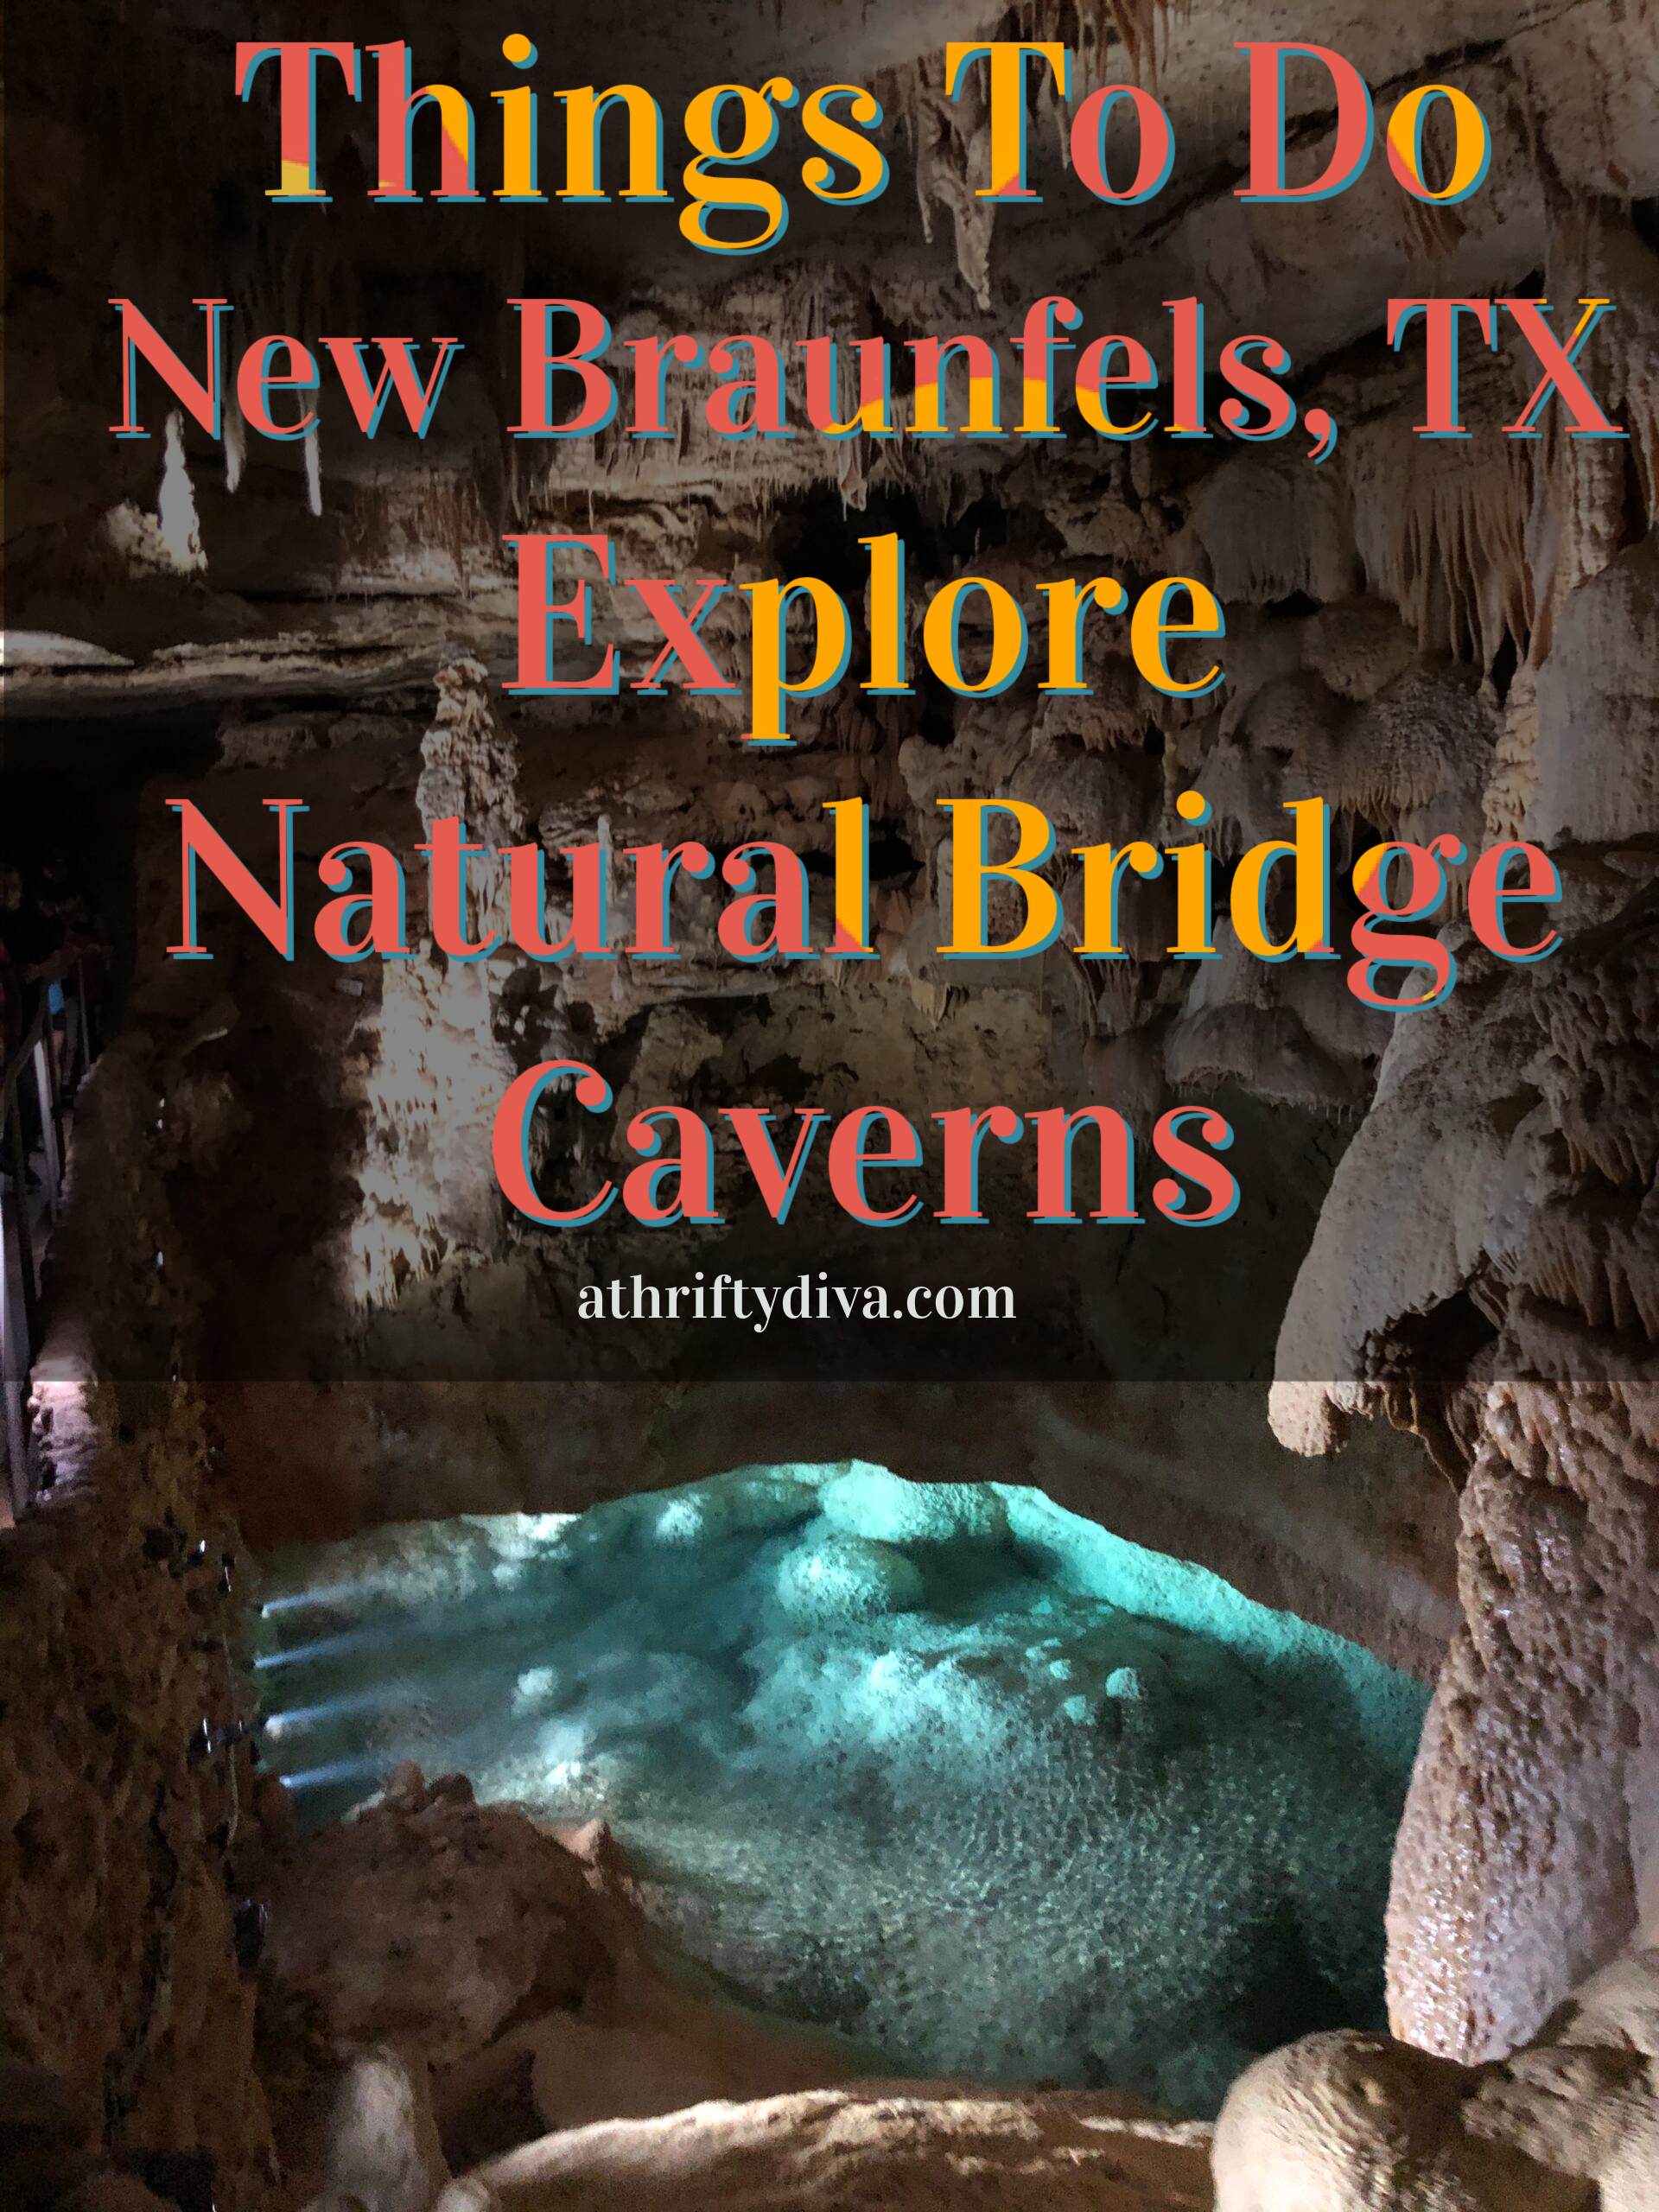 Things to do in new braunfels TX Natural Bridge Caverns